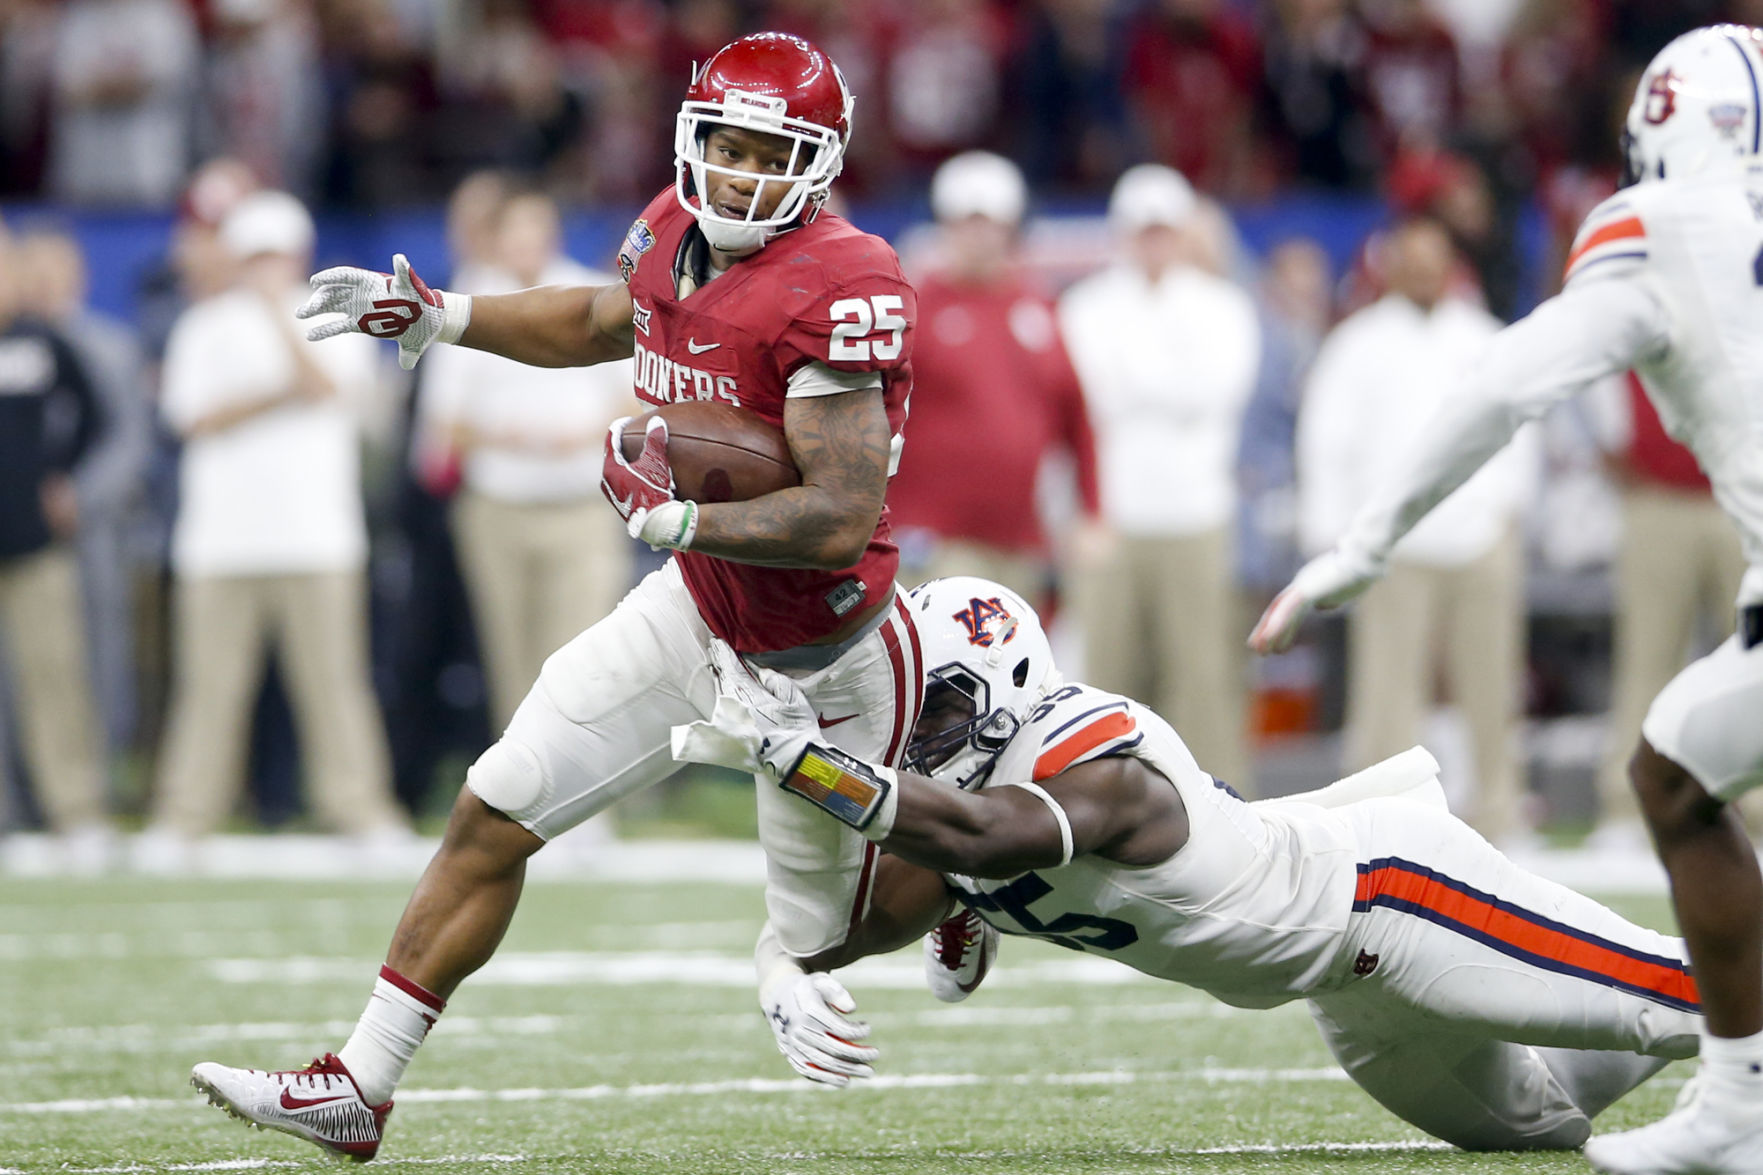 Oklahoma running back Joe Mixon heading to the NFL